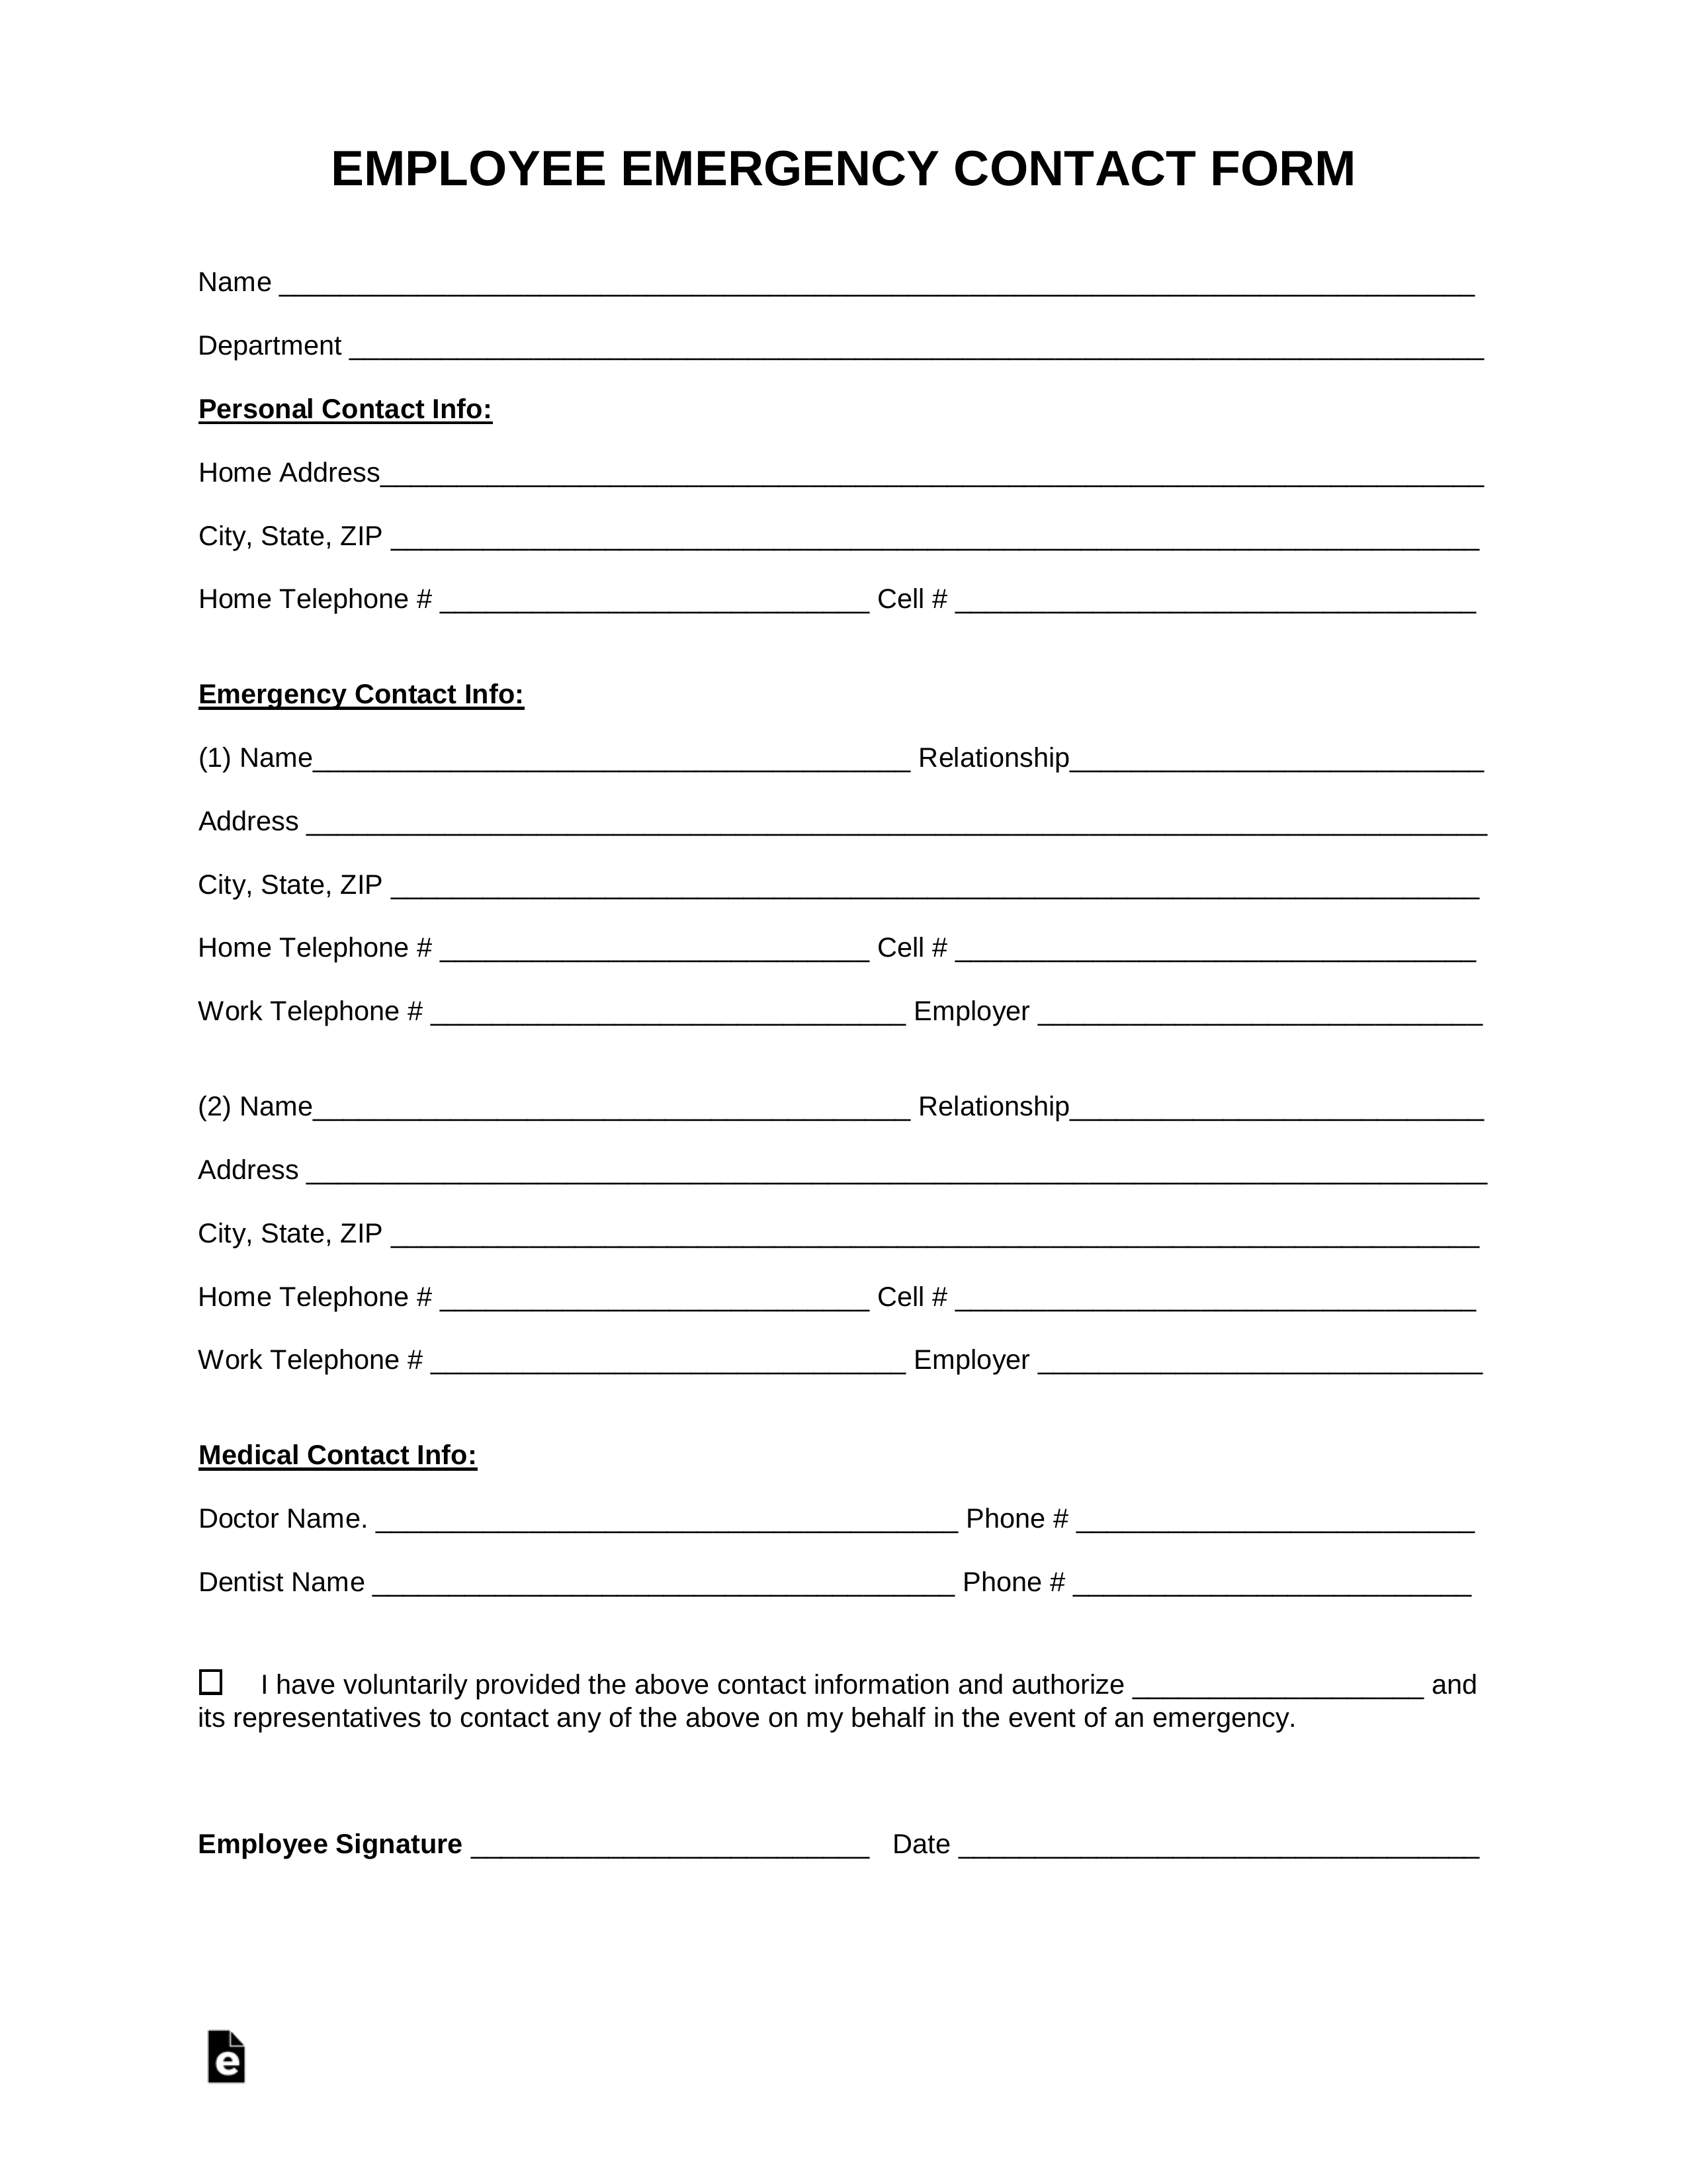 Free Employee Emergency Contact Form - PDF | Word | eForms ... on cna job cover letter, ca cna application form, physical therapist application form, cna employment,